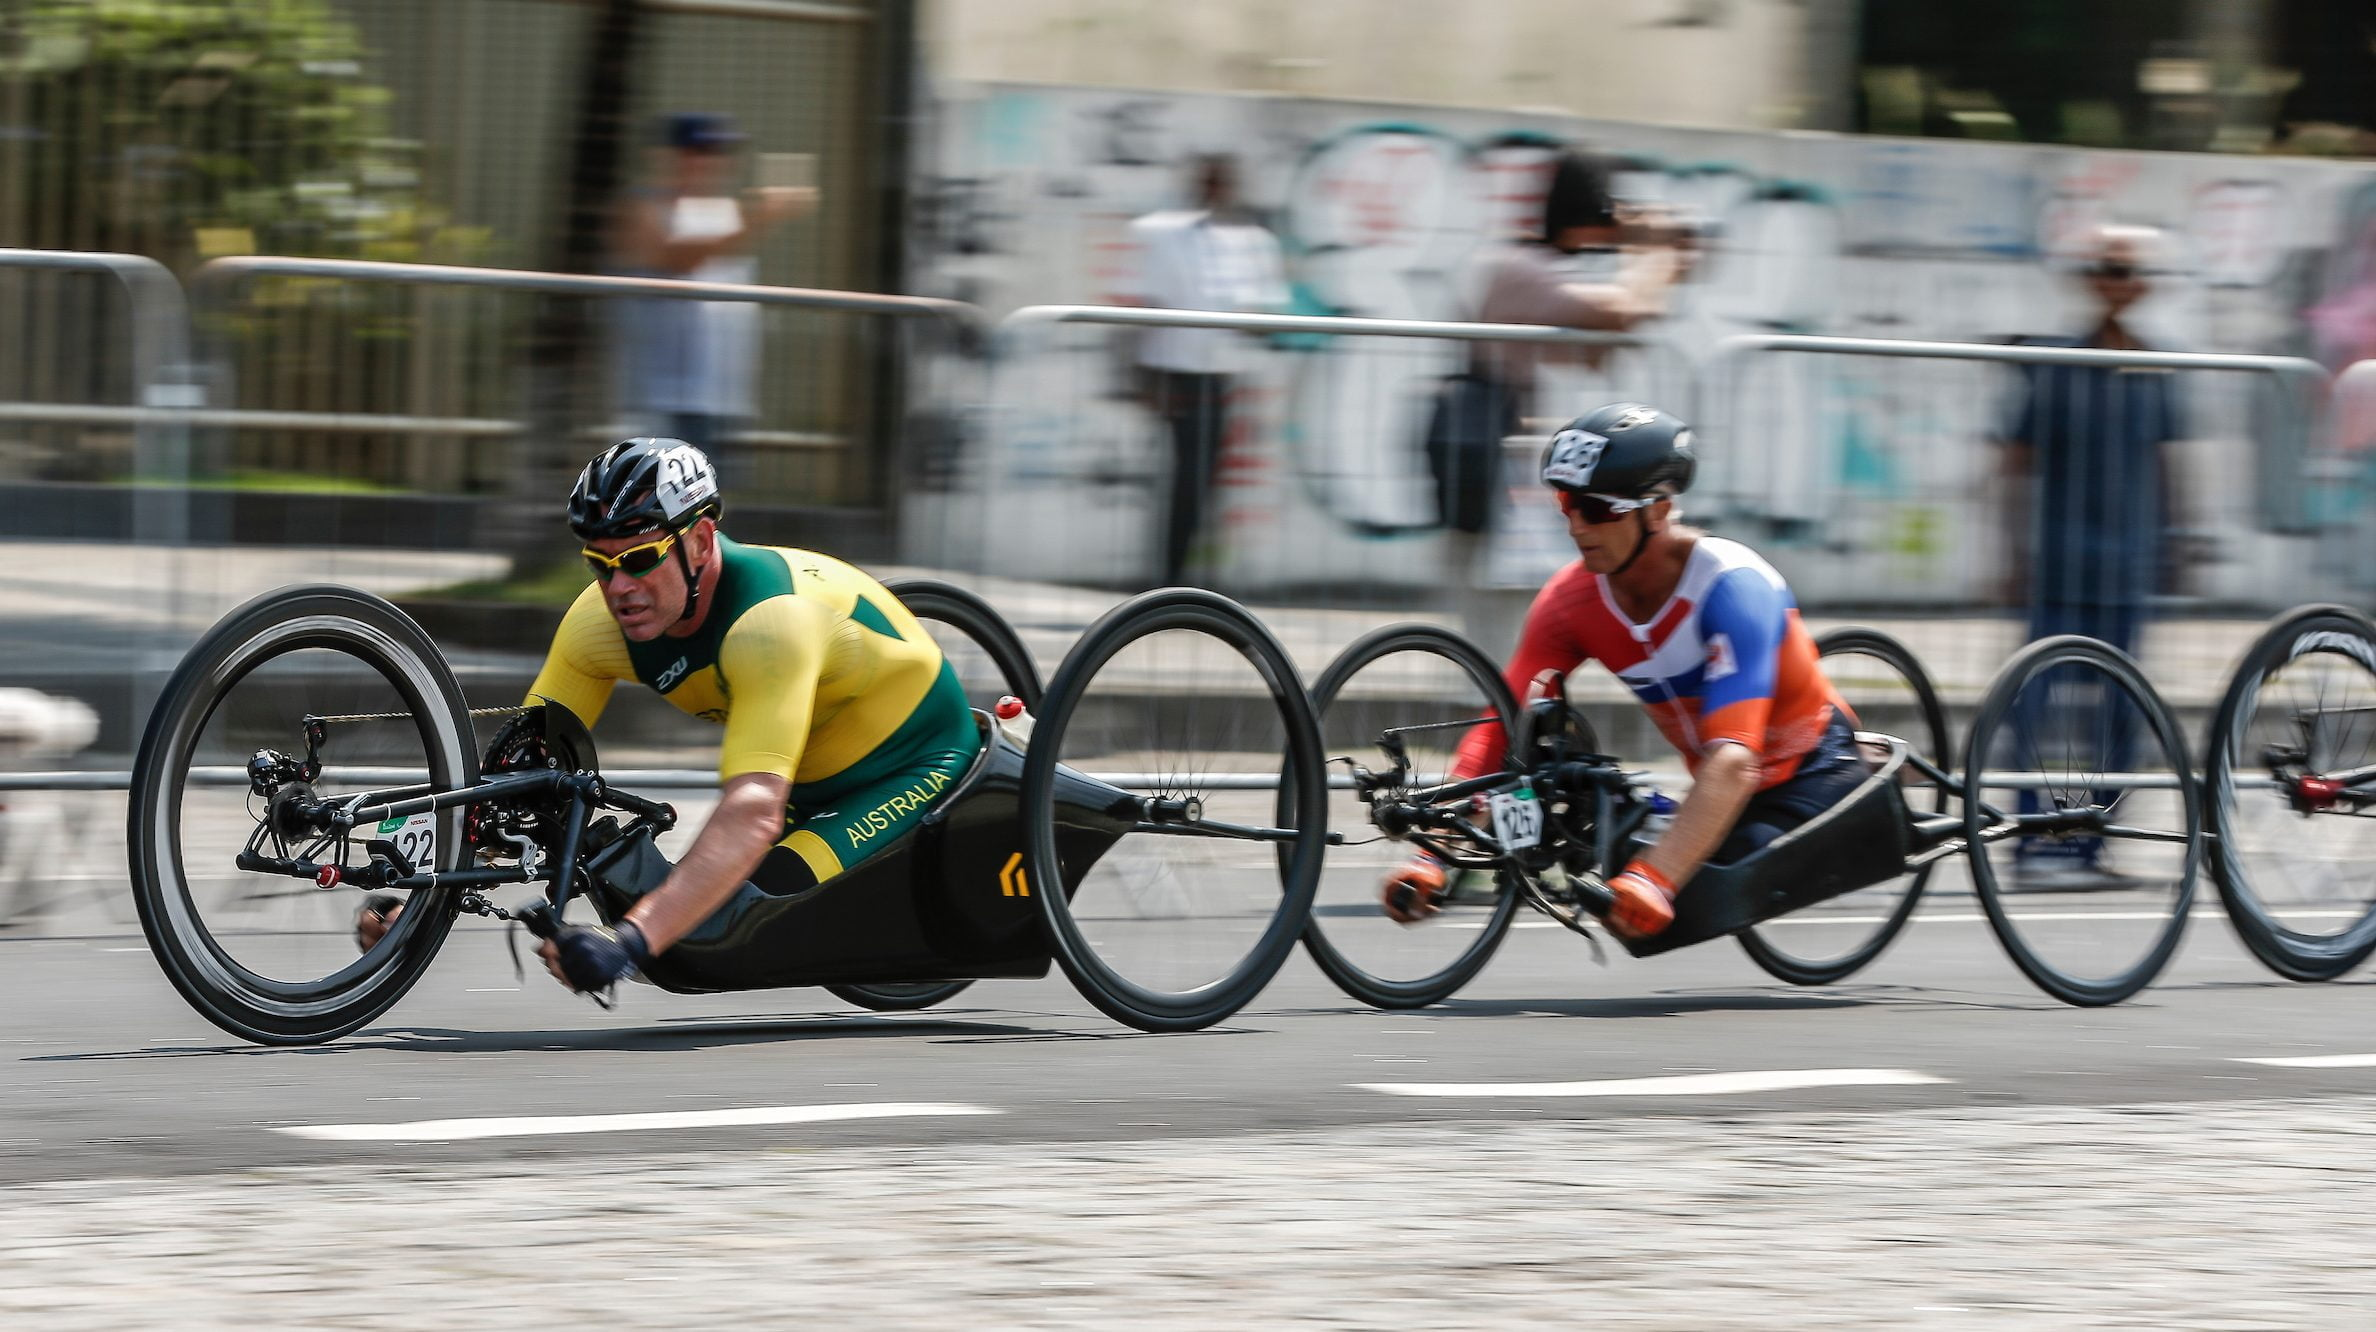 11 medals at the Ostend Para-cycling Road World Cup